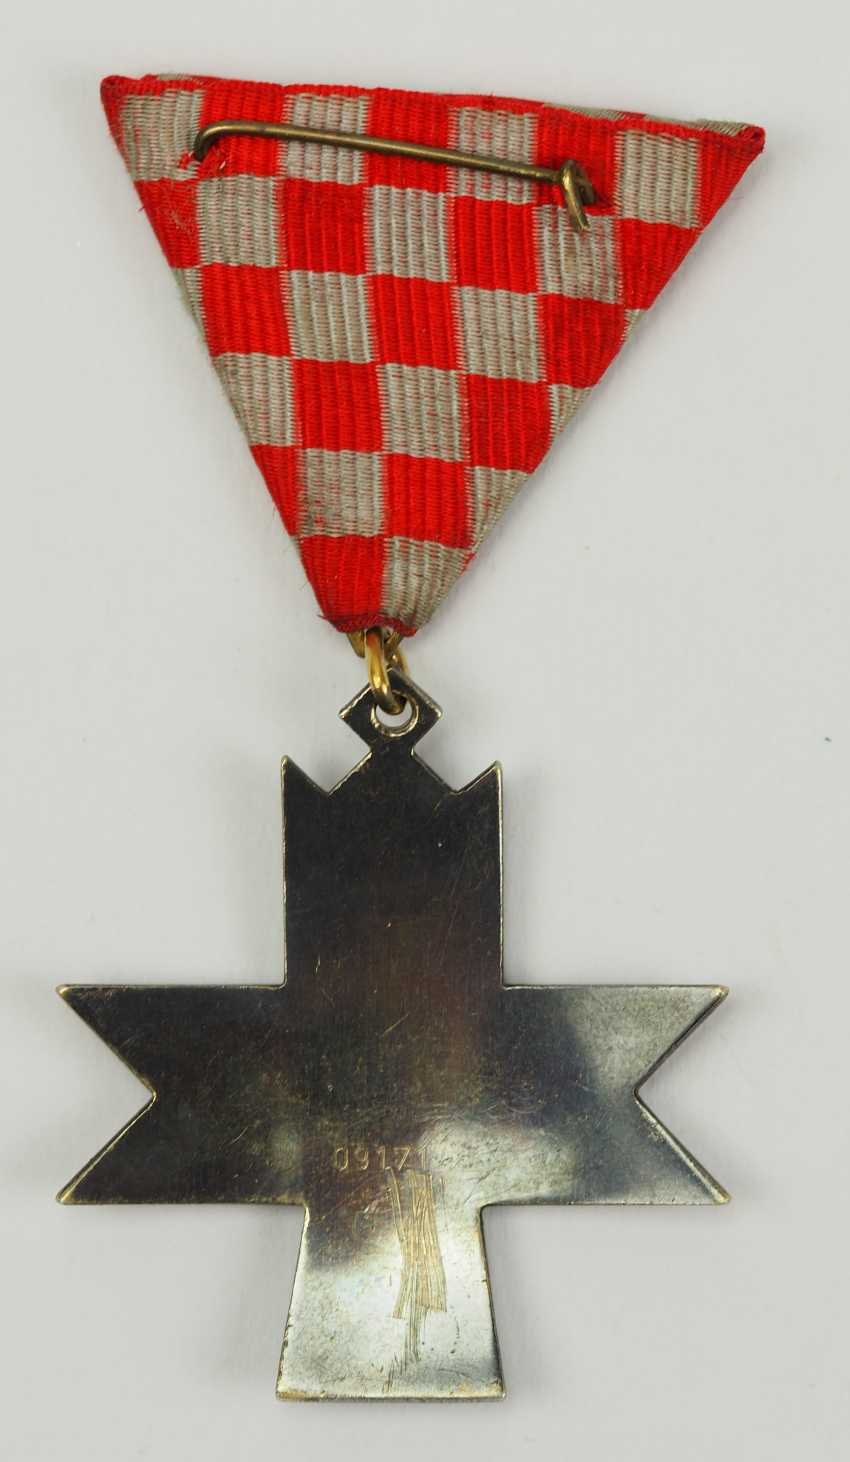 Croatia: order of the crown of king Zvonimir, 2. Model, Knight's Cross. - photo 3